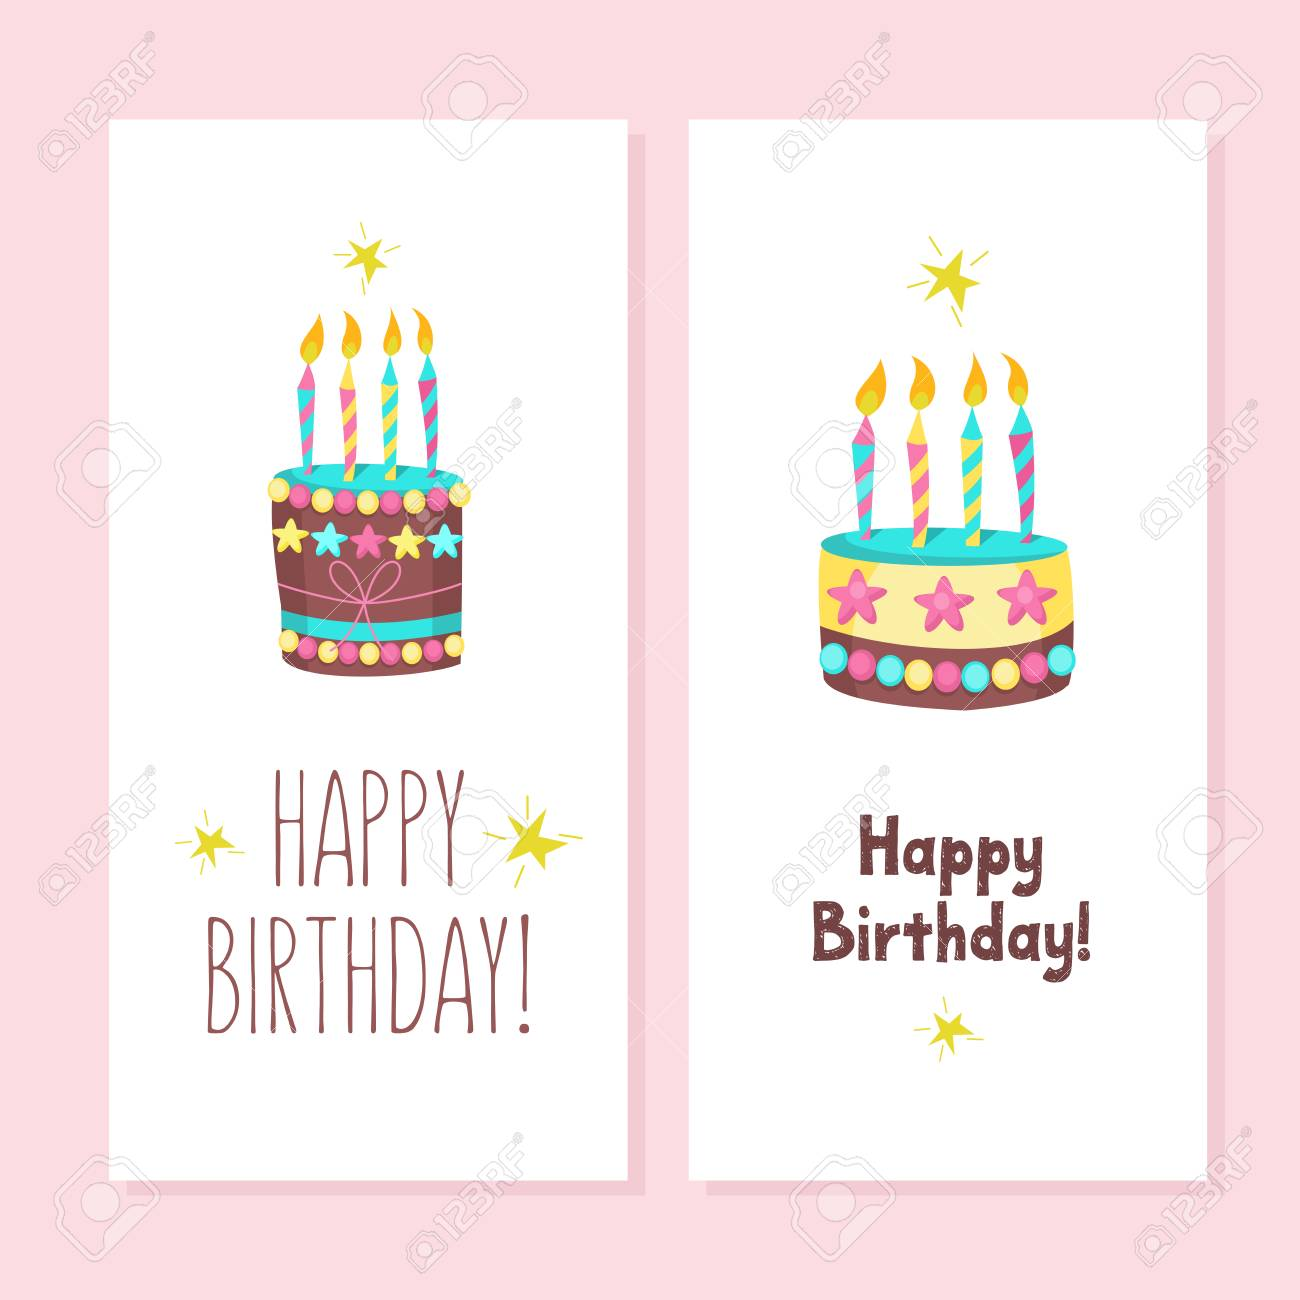 Happy Birthday Greeting Cards Cute Cakes With Candles Vector